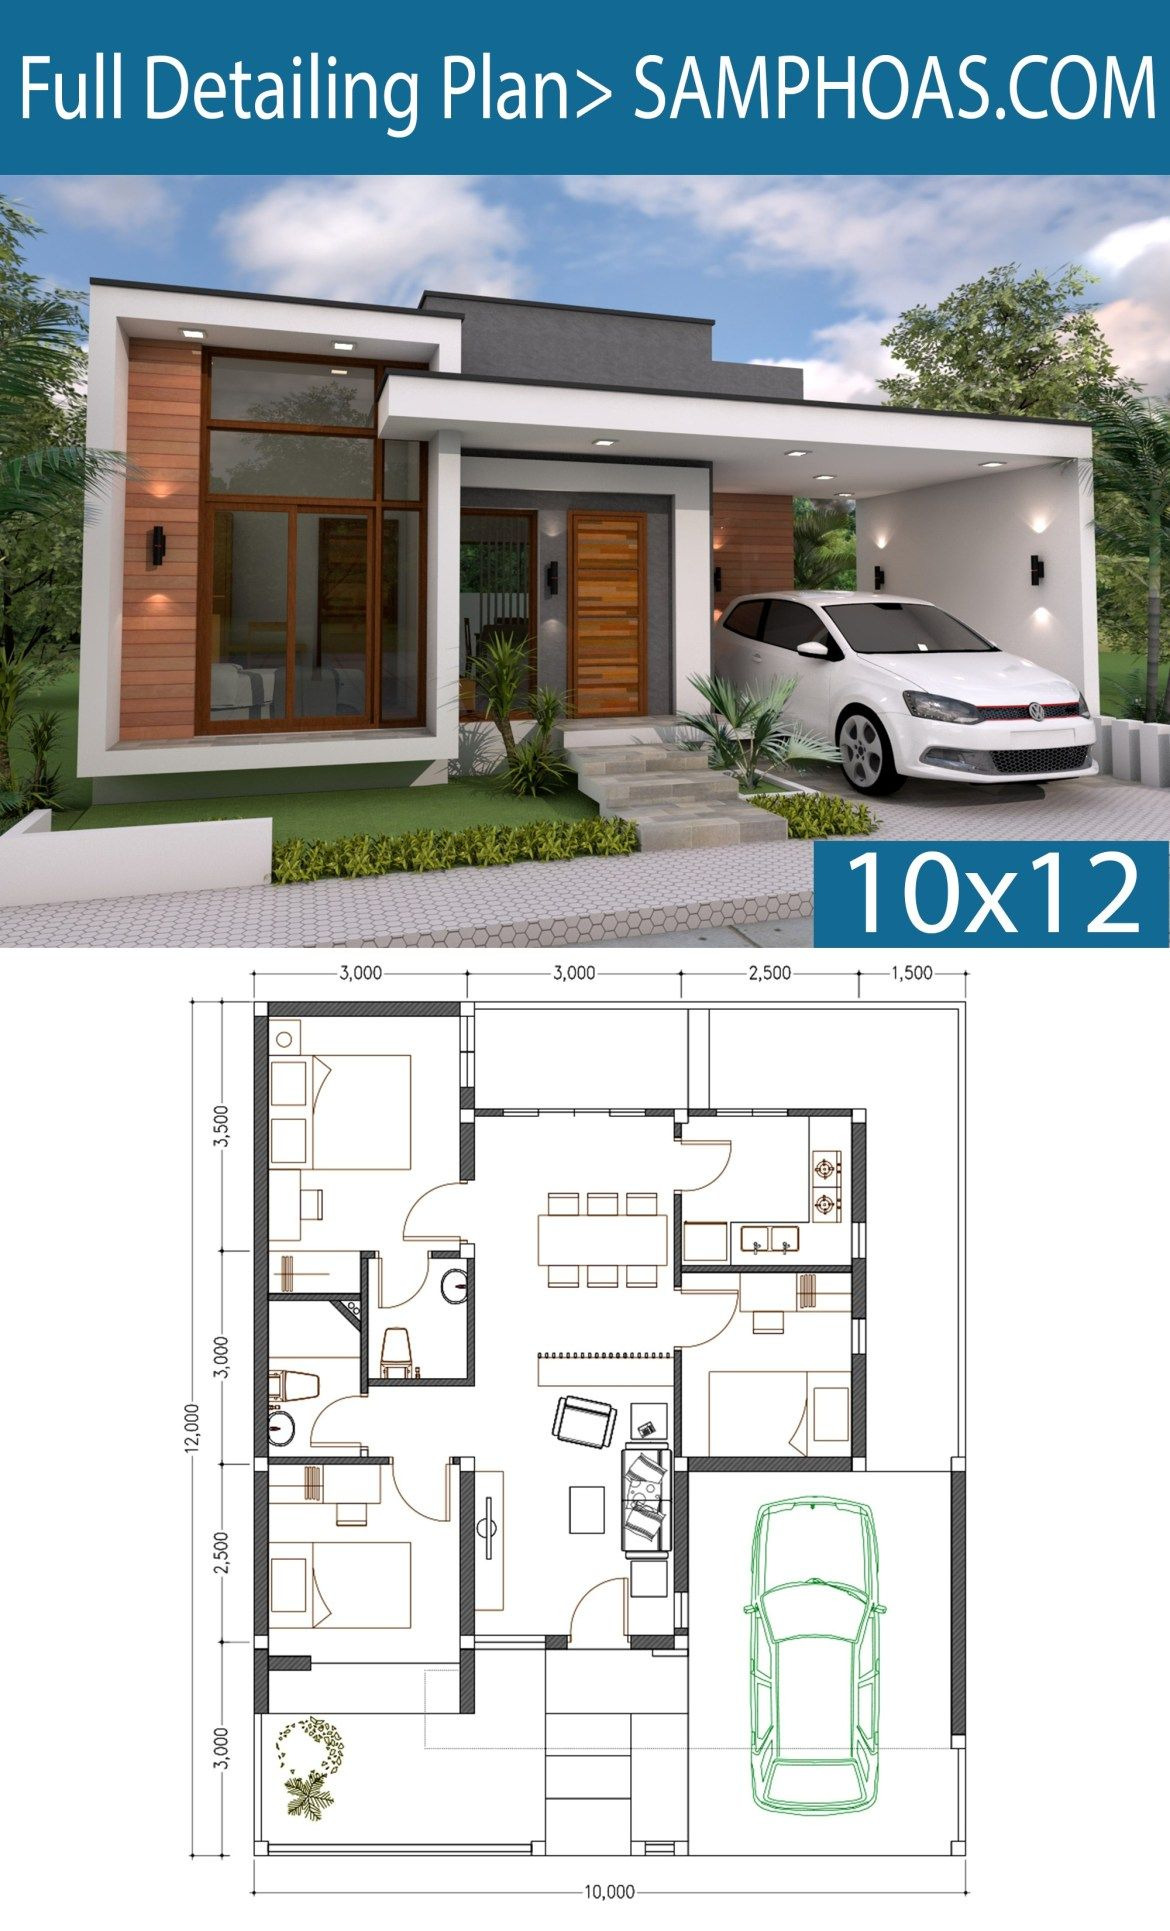 Modern House Plans Designs with Photos Awesome 3 Bedrooms Home Design Plan 10x12m